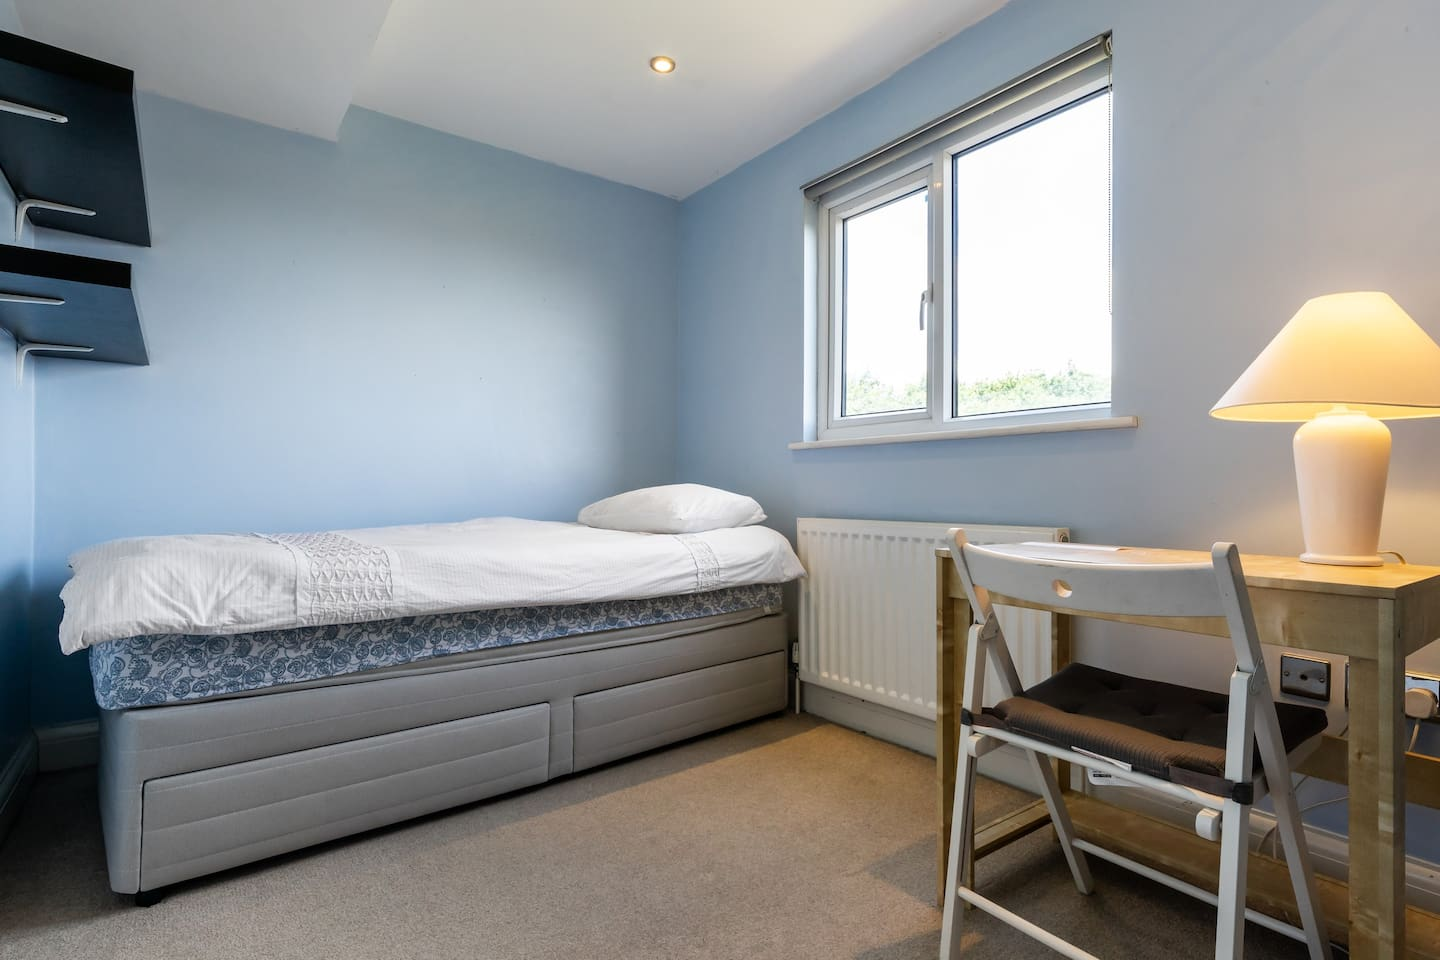 Bright room with a window overlooking the garden with a good view of Muswell Hill.Has new bed,drawers, clothes rail, shelves, desk and chair with desk lamp